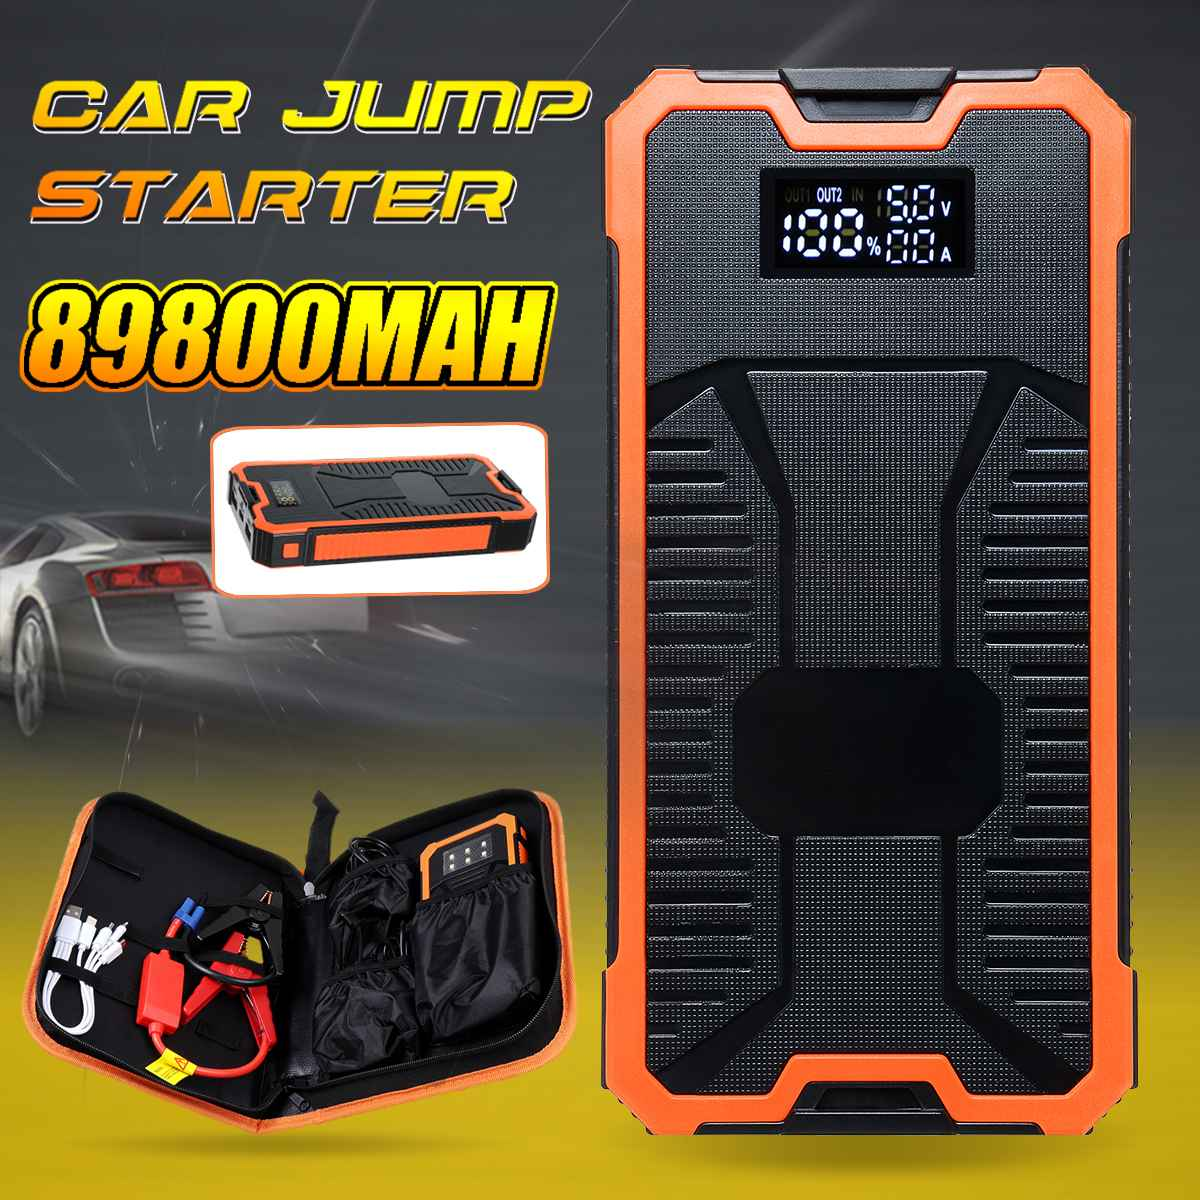 12V 89800mAh Car Jump Starter Digital Display Starting Device Portable Power Bank Fast Charger Dual USB Output For Car Battery